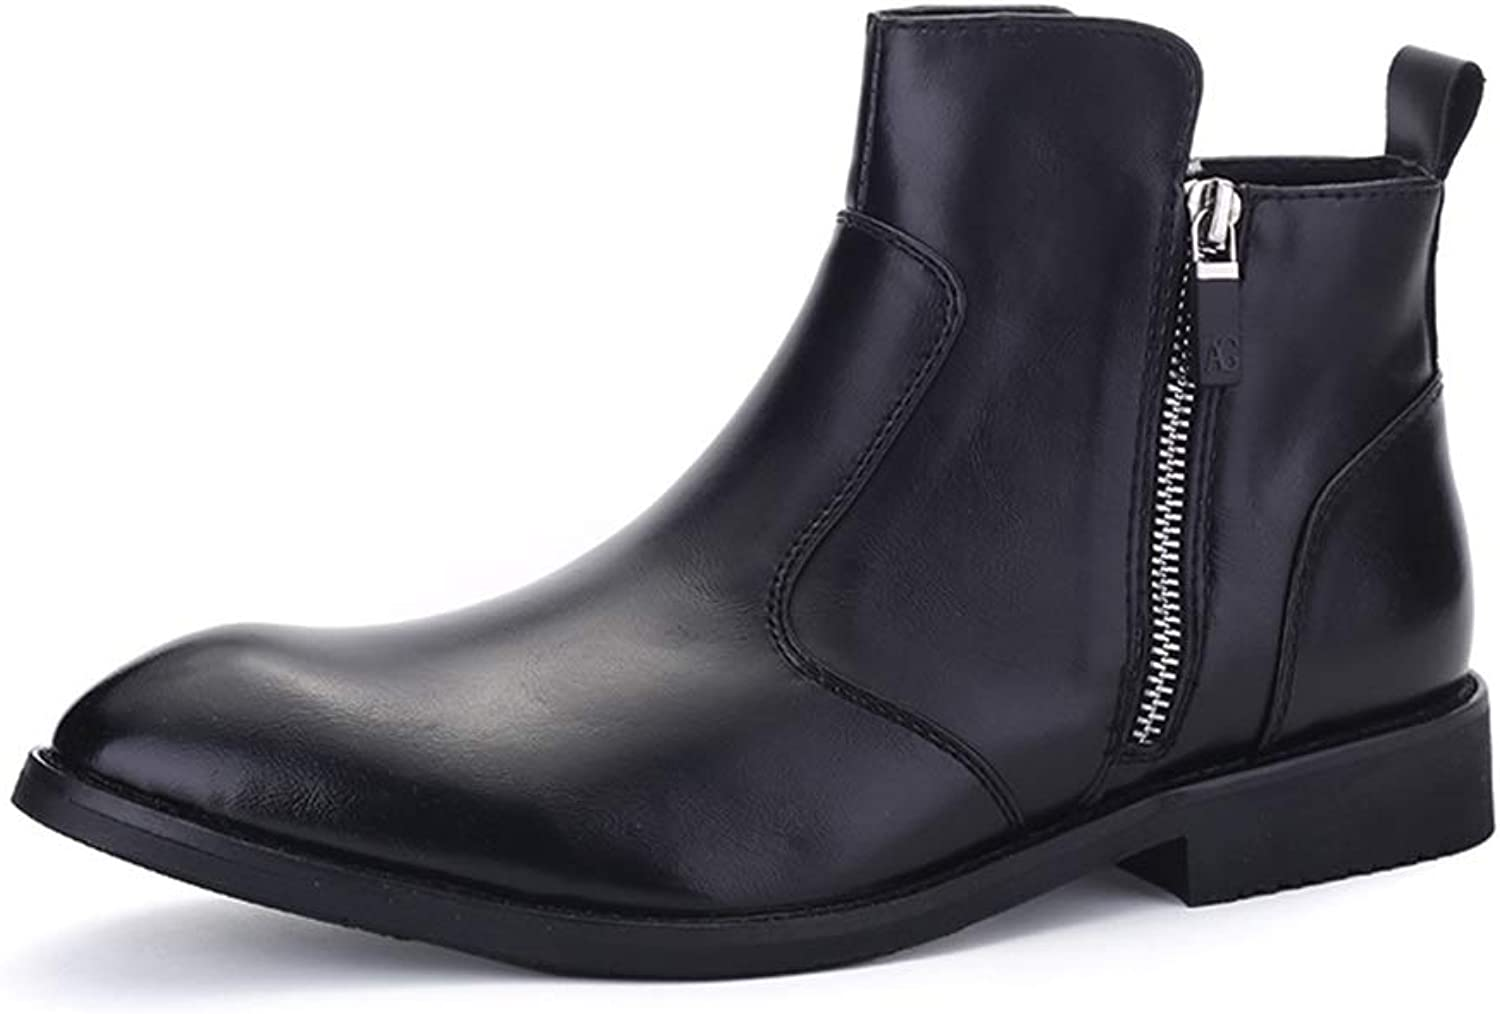 Mens shoes Comfortable Men's shoes PU Leather Chelsea Rain Boots Casual High Top Flat Ankle Boots Waterproof Zipper Anti-Slip Round Toe Slip On